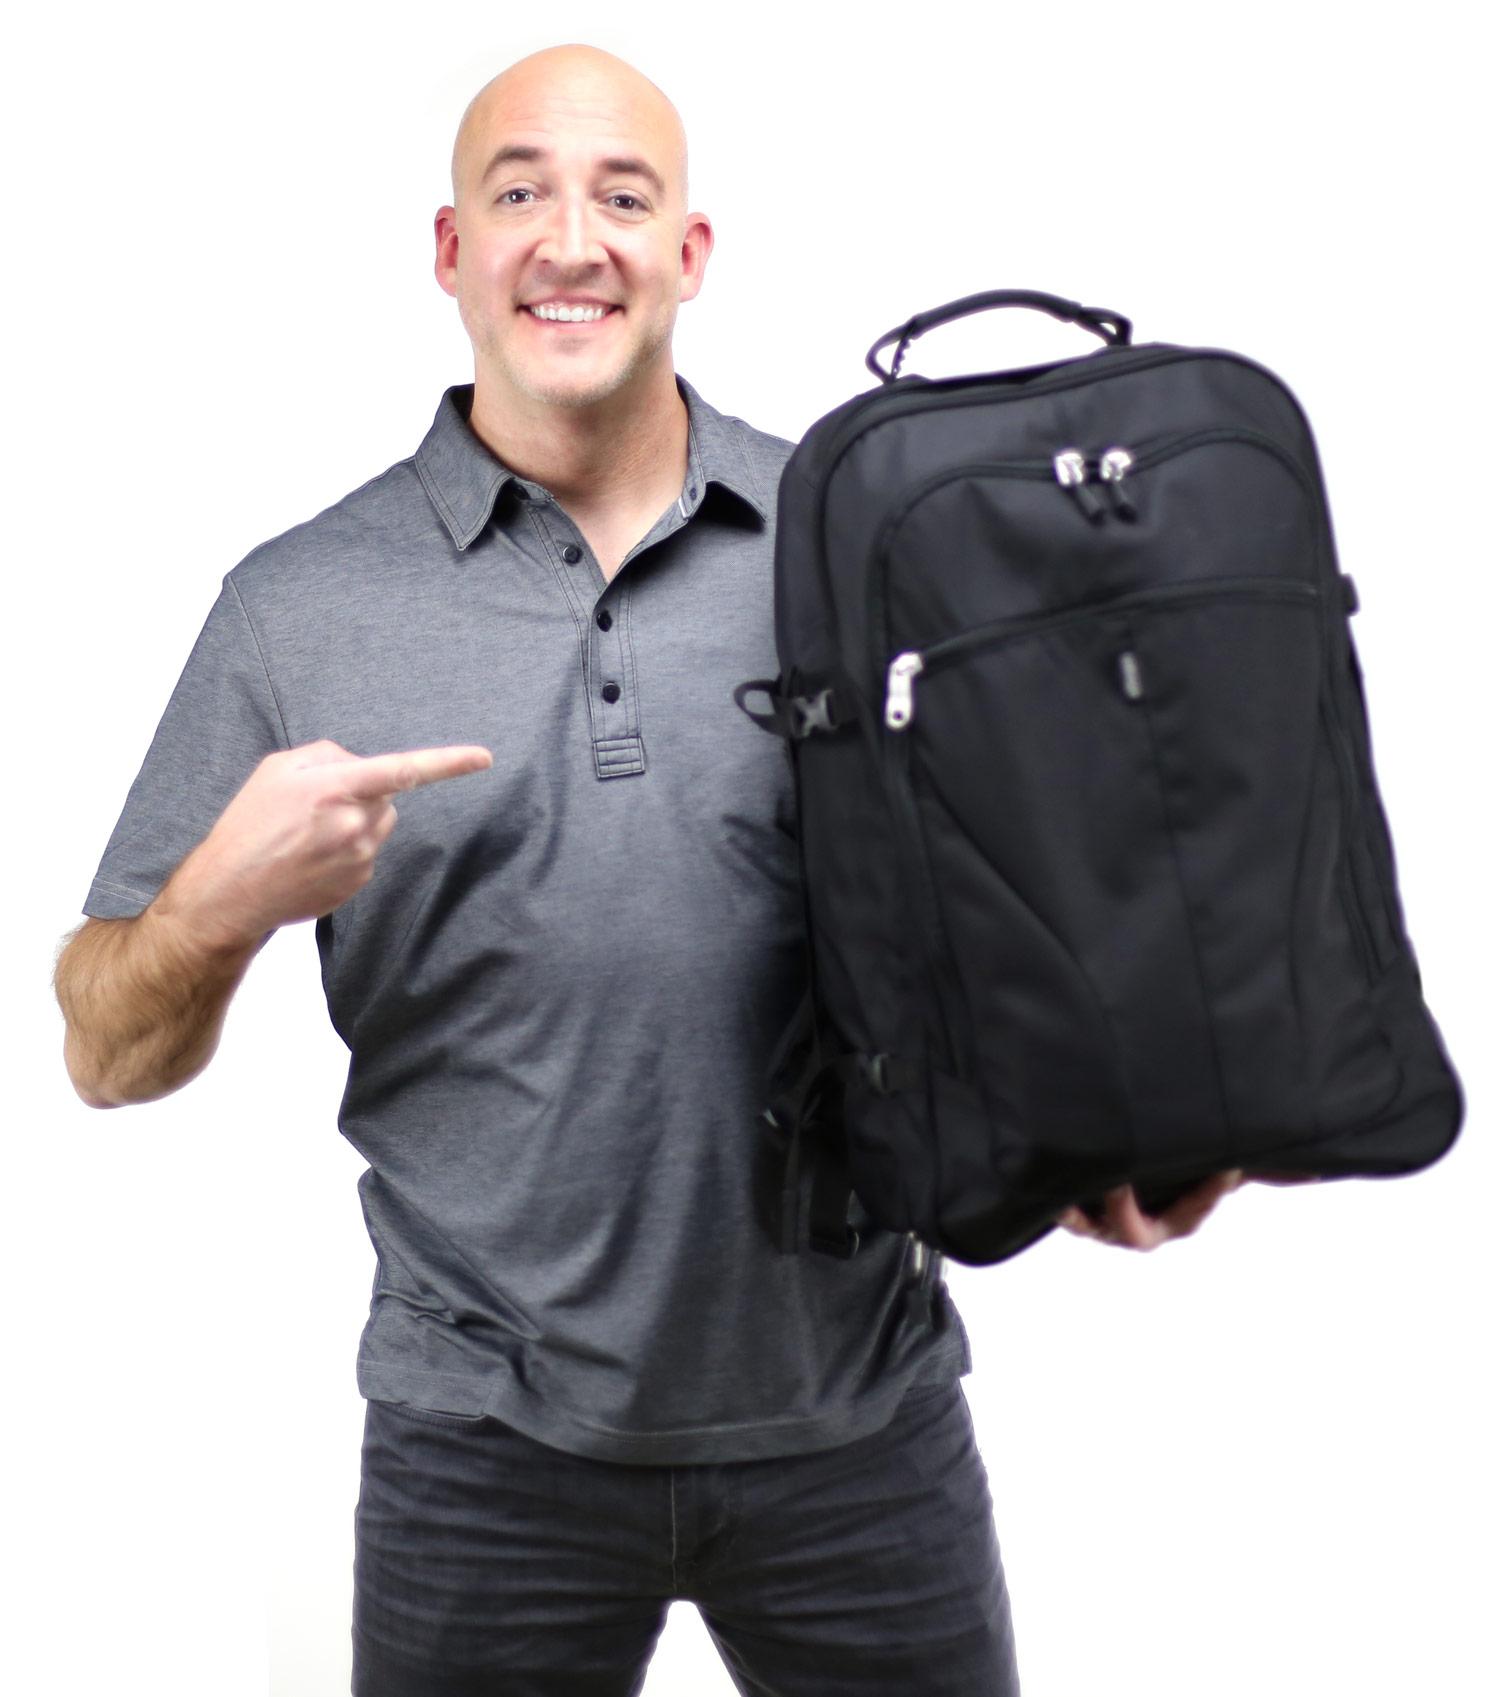 Author holding a small black travel backpack.